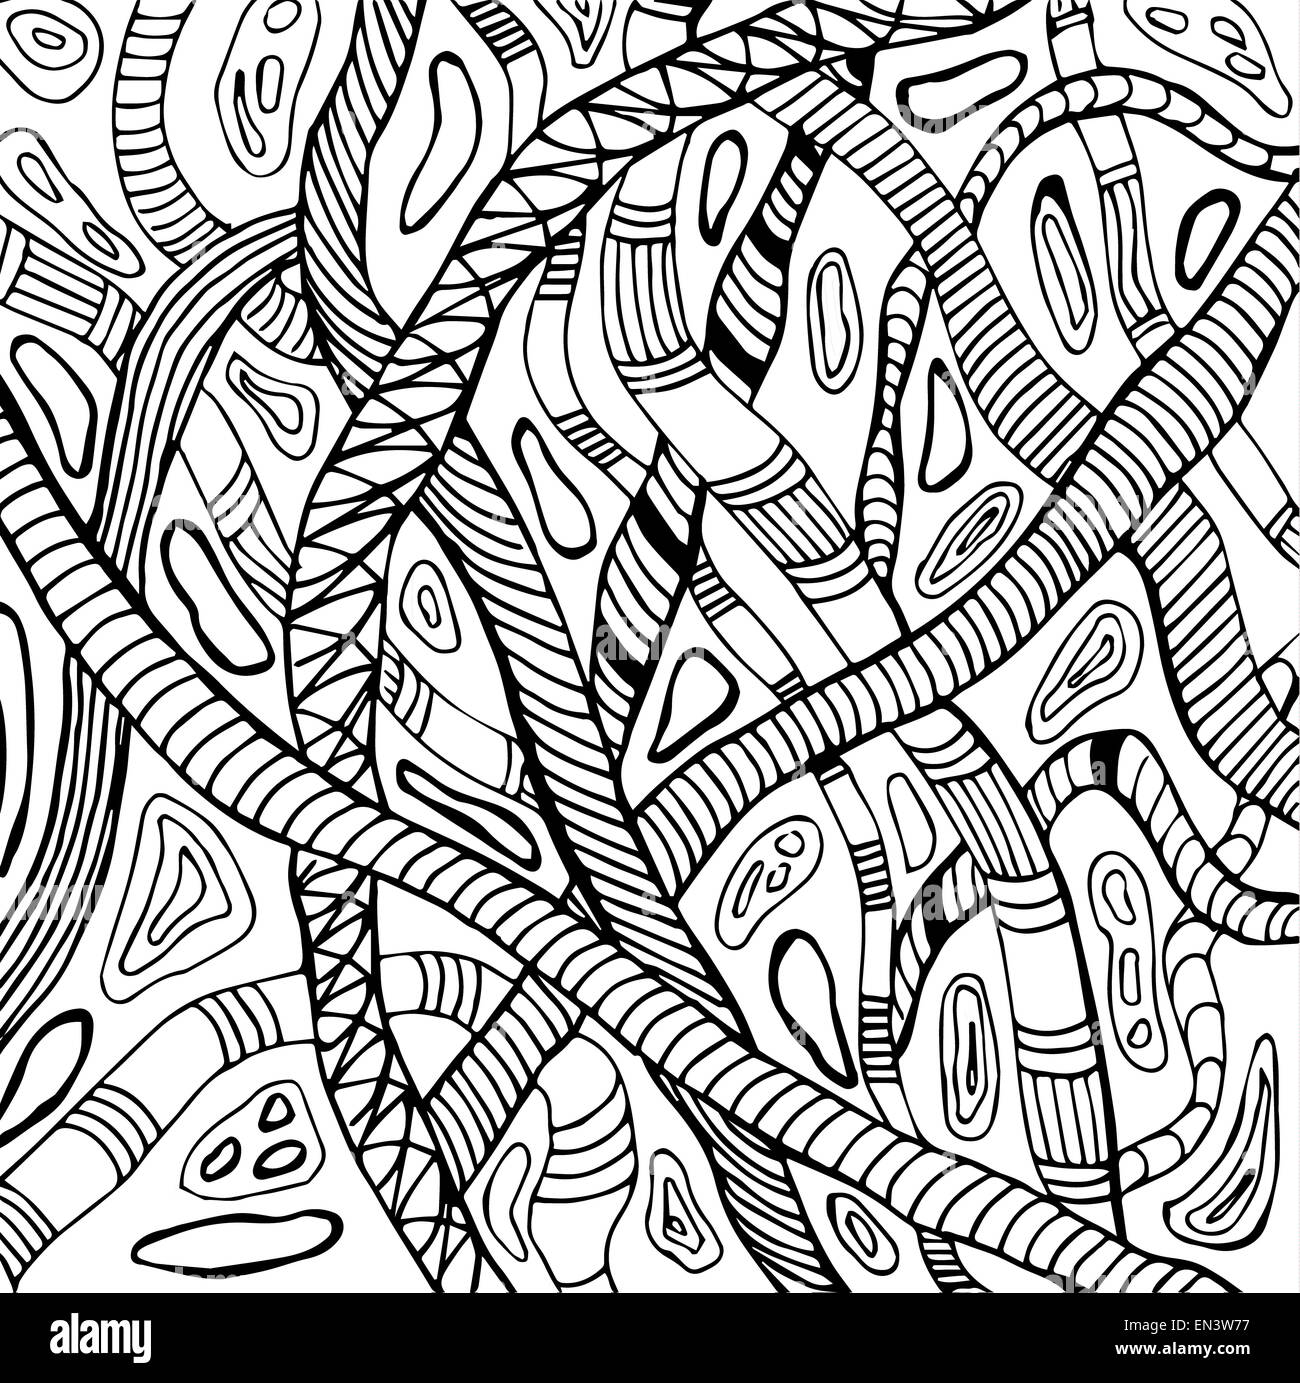 Abstract illustration of snakes - Stock Image